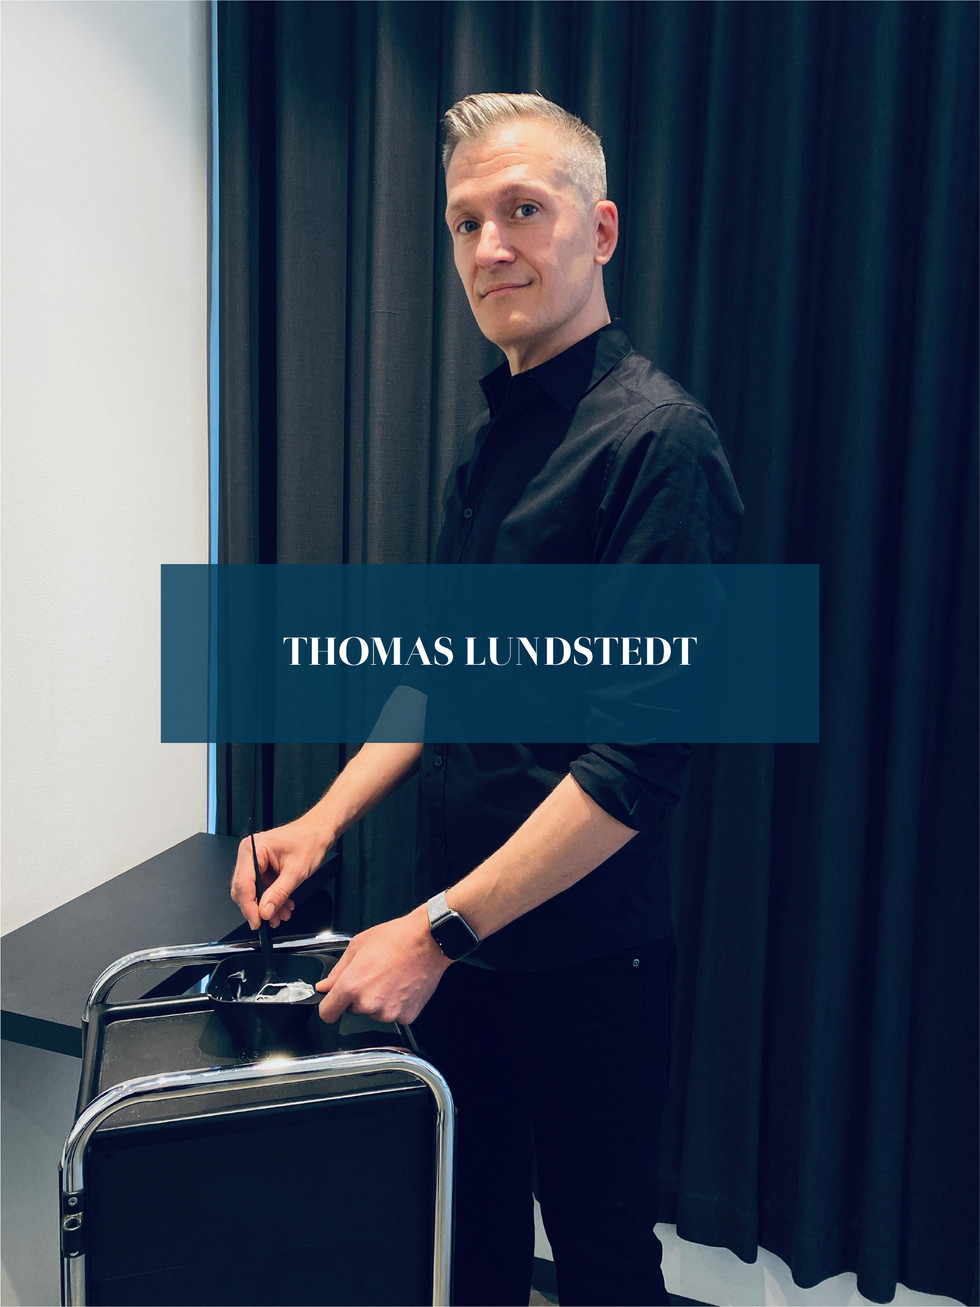 Thomas Lundstedt